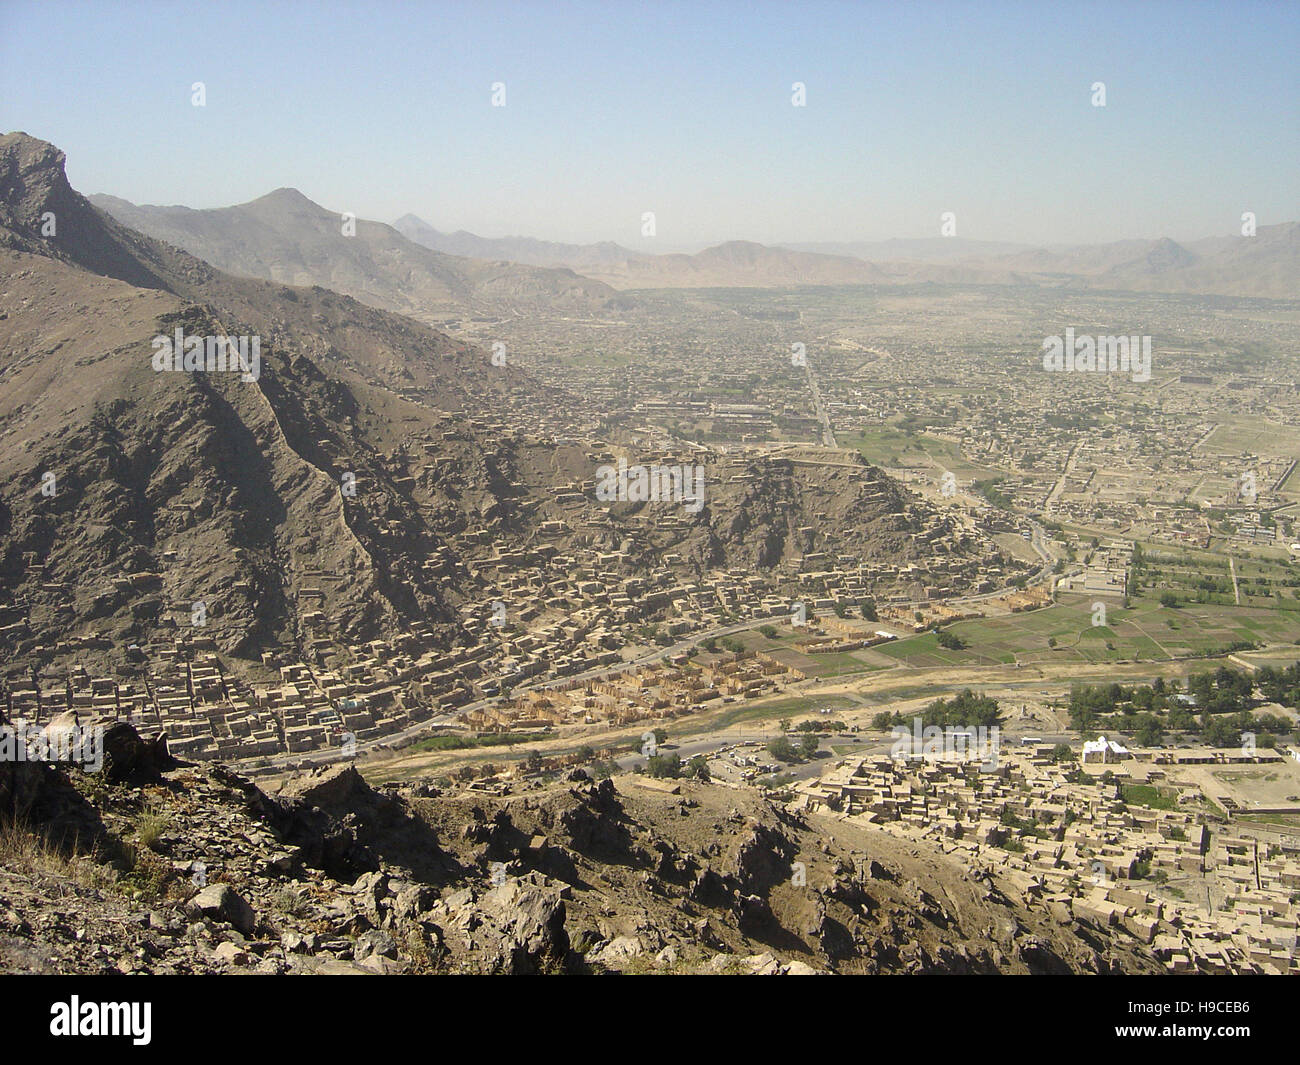 28th May 2004 Viewed from the top of the Asmai Heights (TV hill): an aerial view of Kabul, looking to the south. Stock Photo